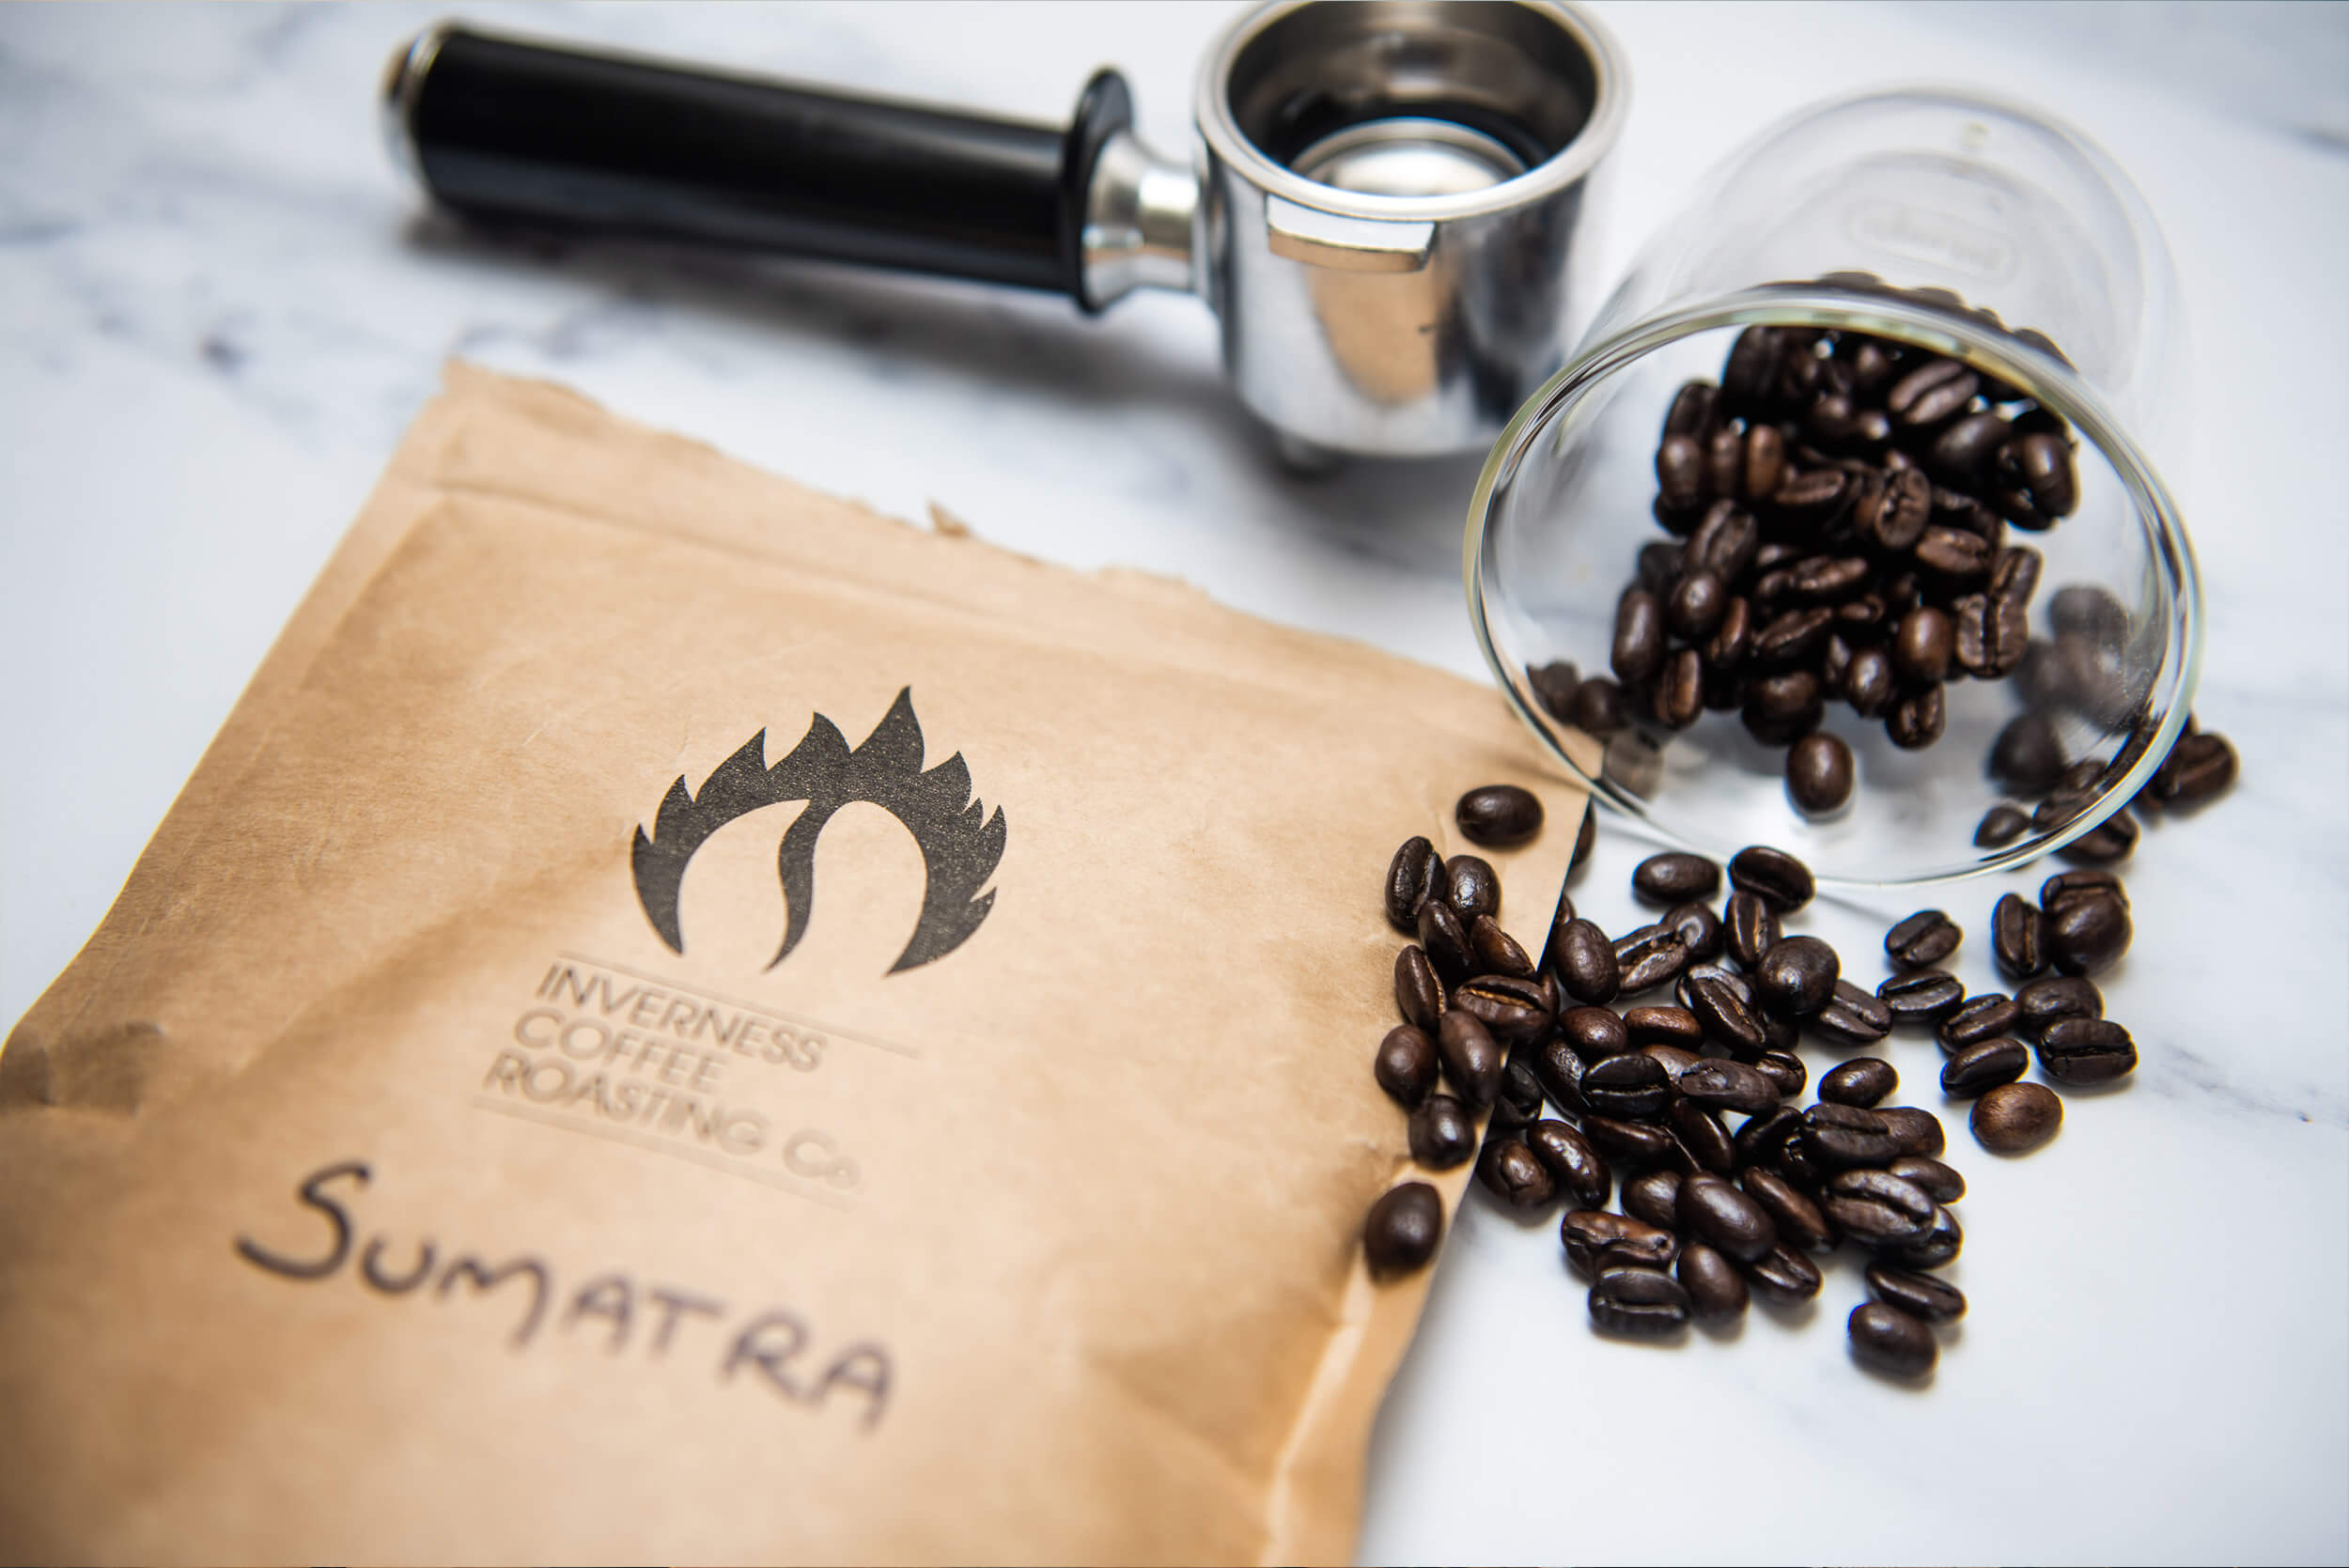 inverness-coffee-roasting-company-ryanjohnstonco